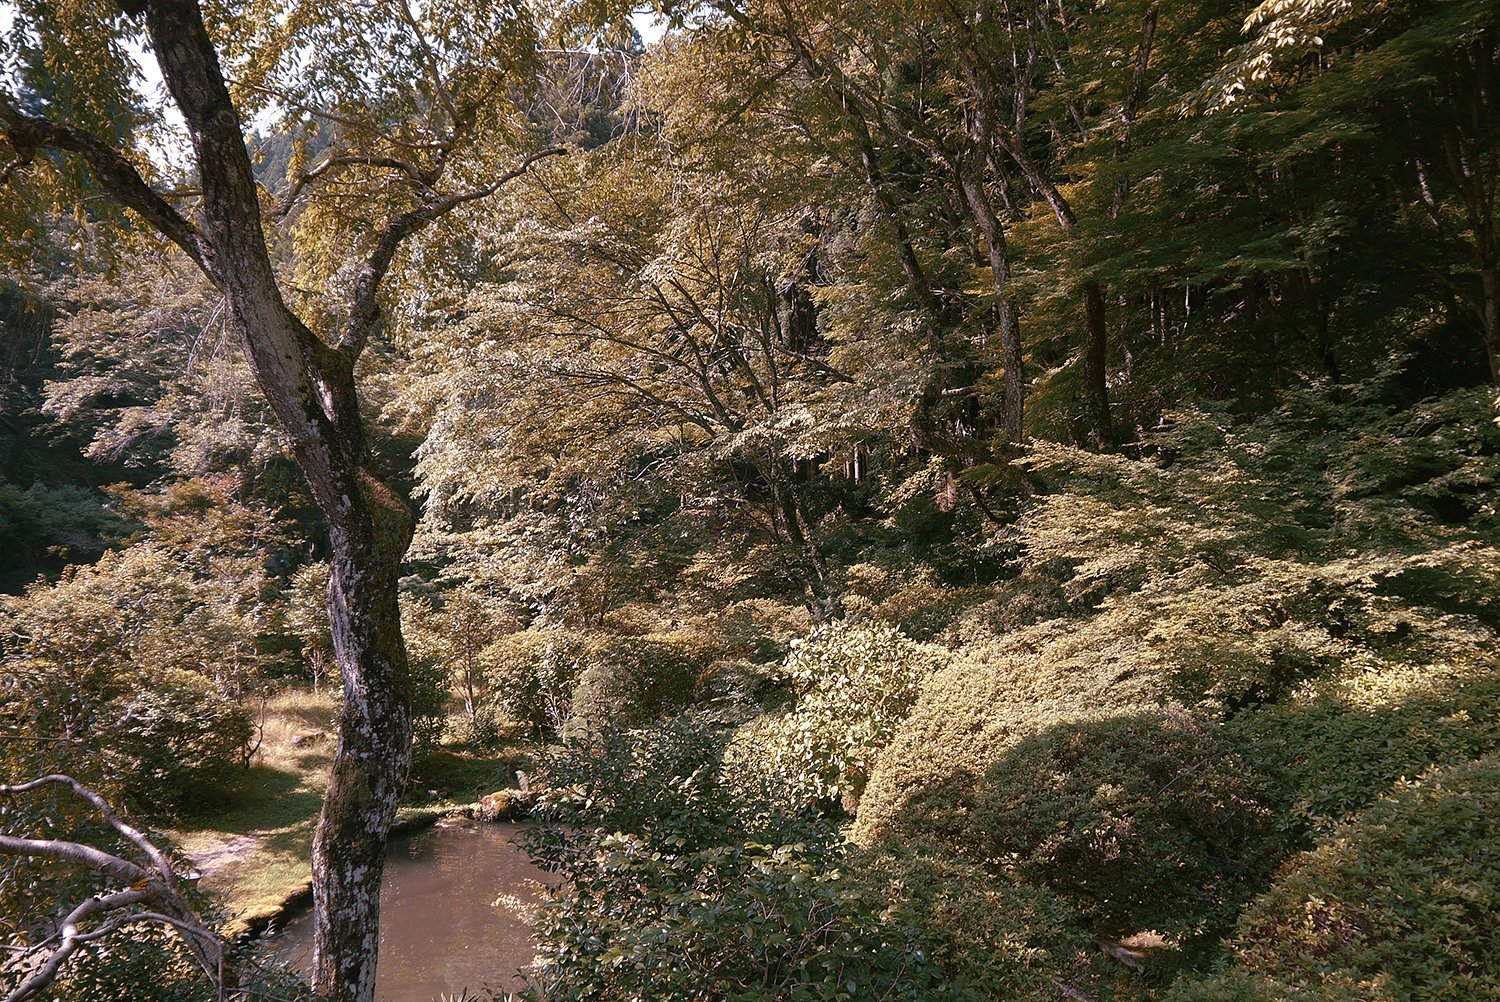 A scenic view of the wild, natural landscape in Yoshino, a city in the Nara region of Central Japan. Tagged: Outdoor and Trees.  Photo 12 of 12 in The Community-Run Cedar House by Airbnb and Go Hasegawa Welcomes Guests in Rural Japan from Yoshino Cedar House